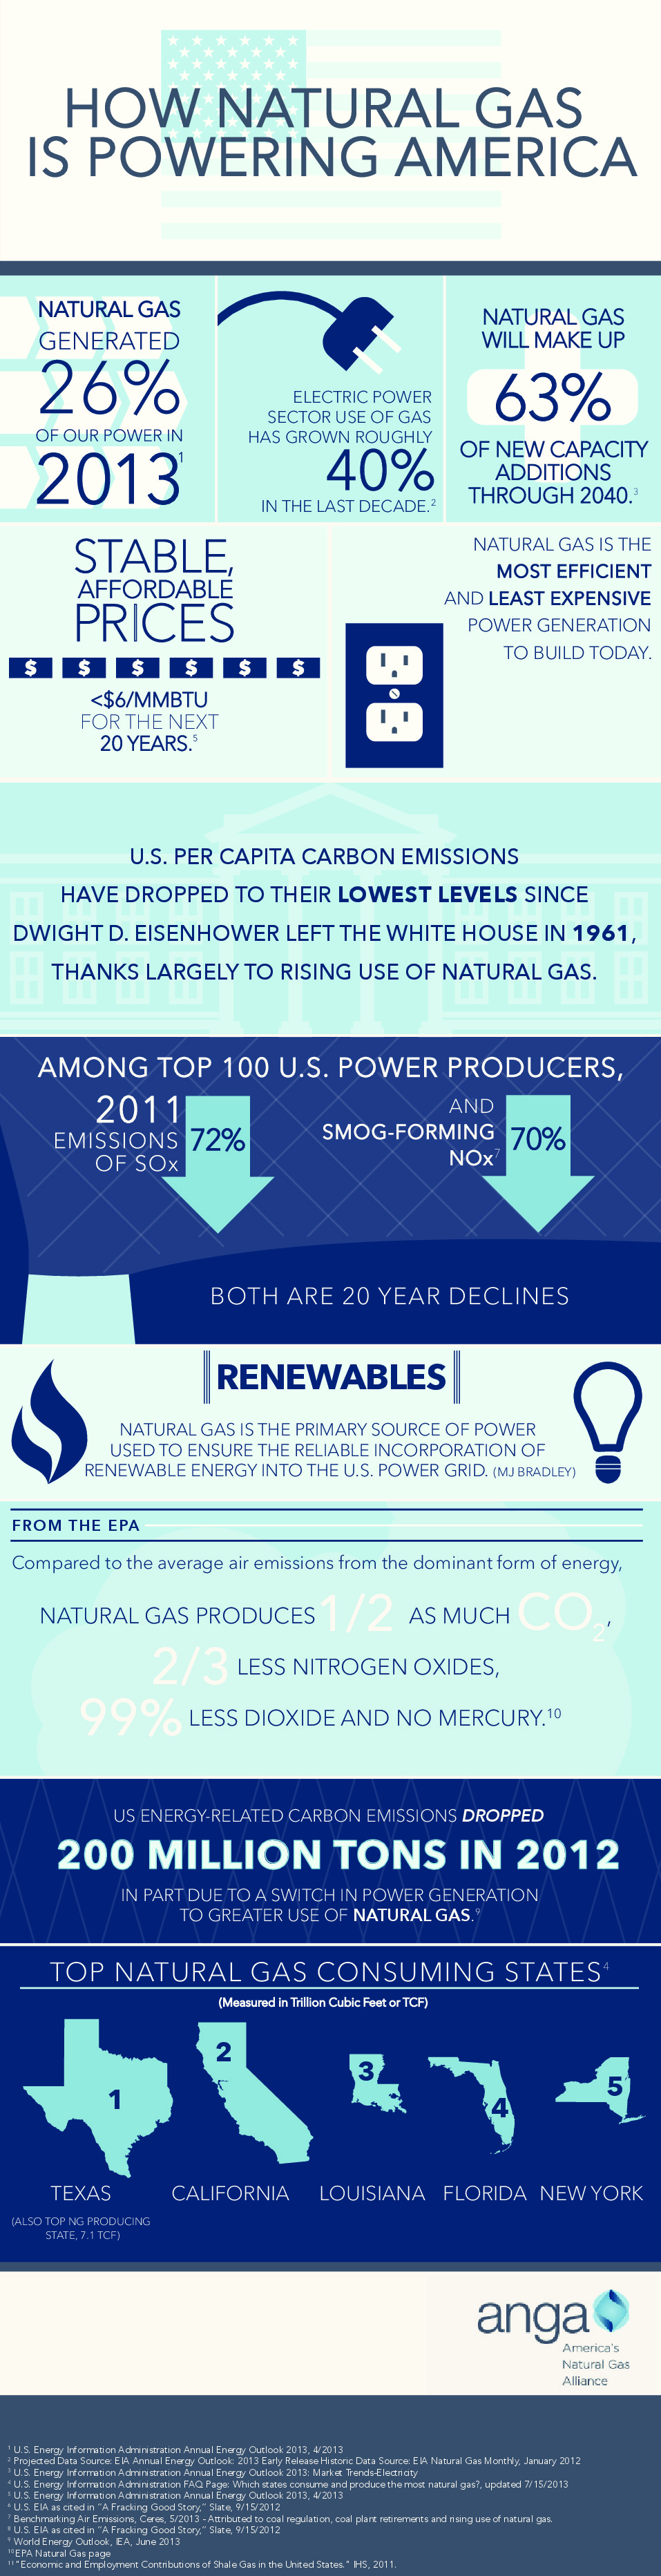 How Natural Gas Is Powering America